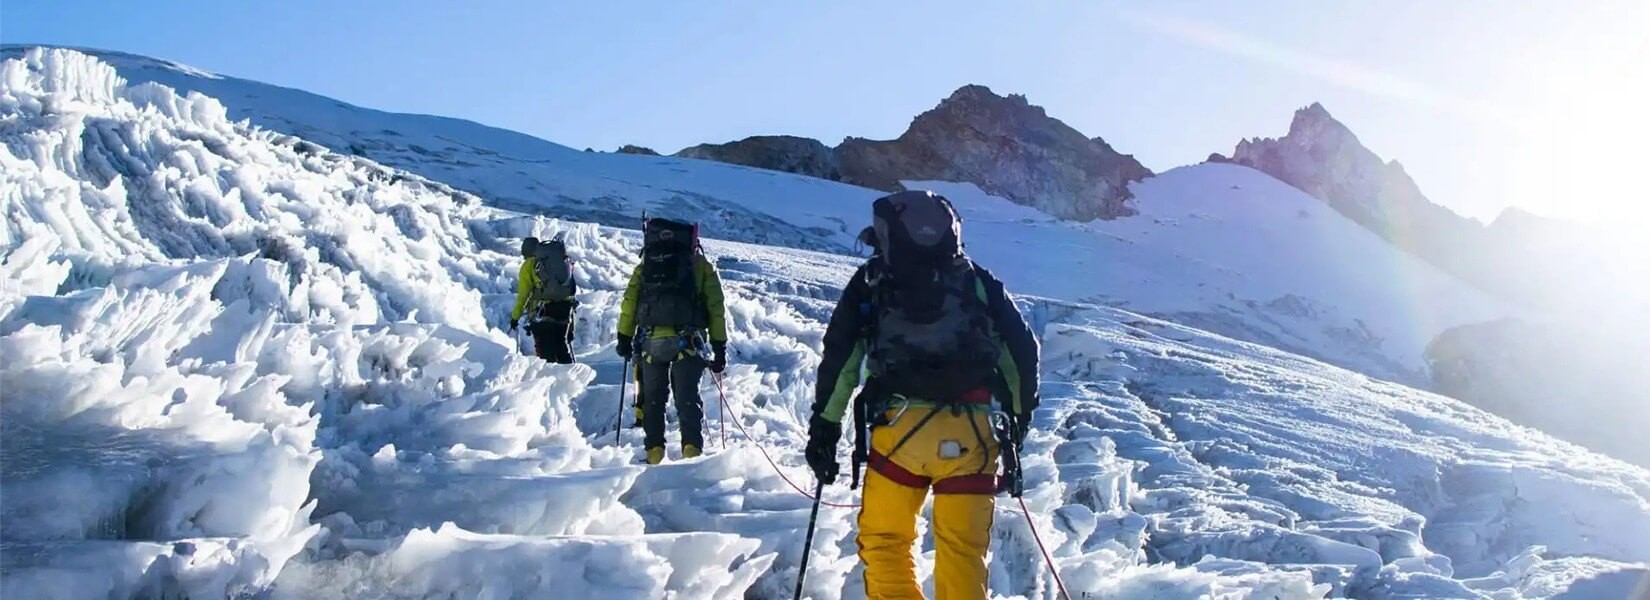 Book Your Peak Climbing Trip Online Instantly